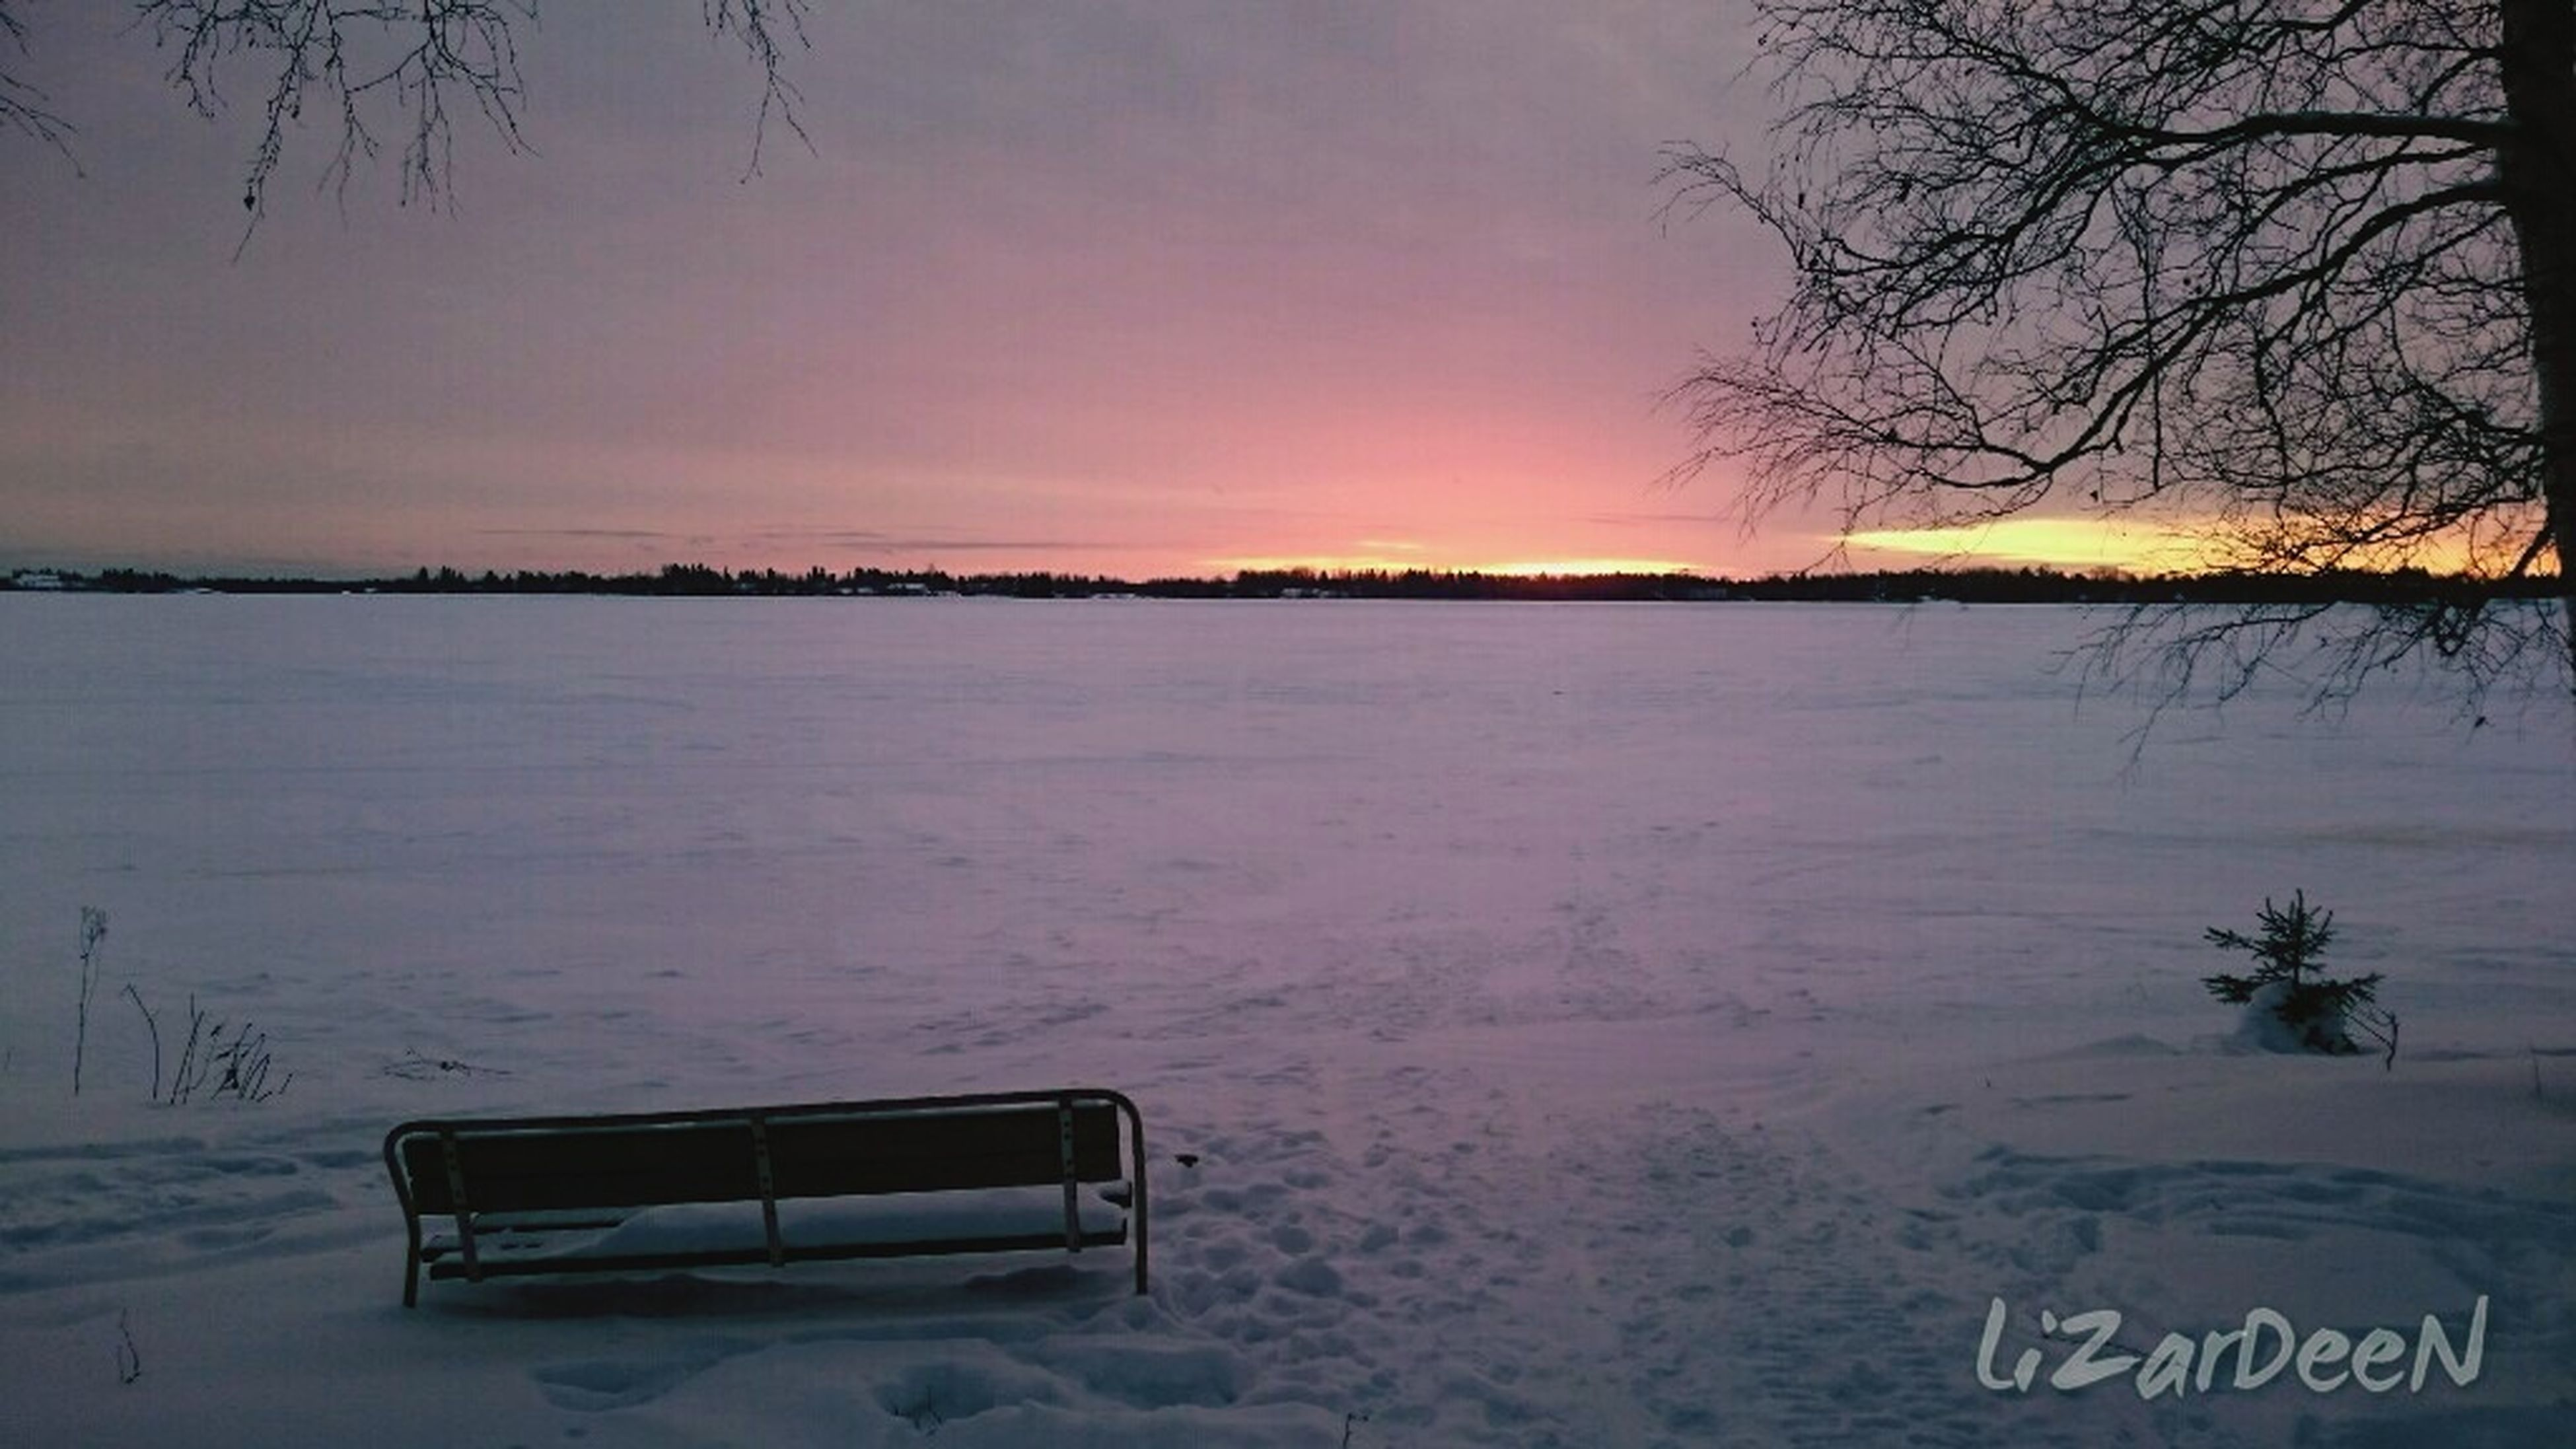 winter, snow, cold temperature, tranquility, tranquil scene, sunset, weather, tree, scenics, sky, season, beauty in nature, nature, bare tree, covering, dusk, landscape, water, frozen, lake